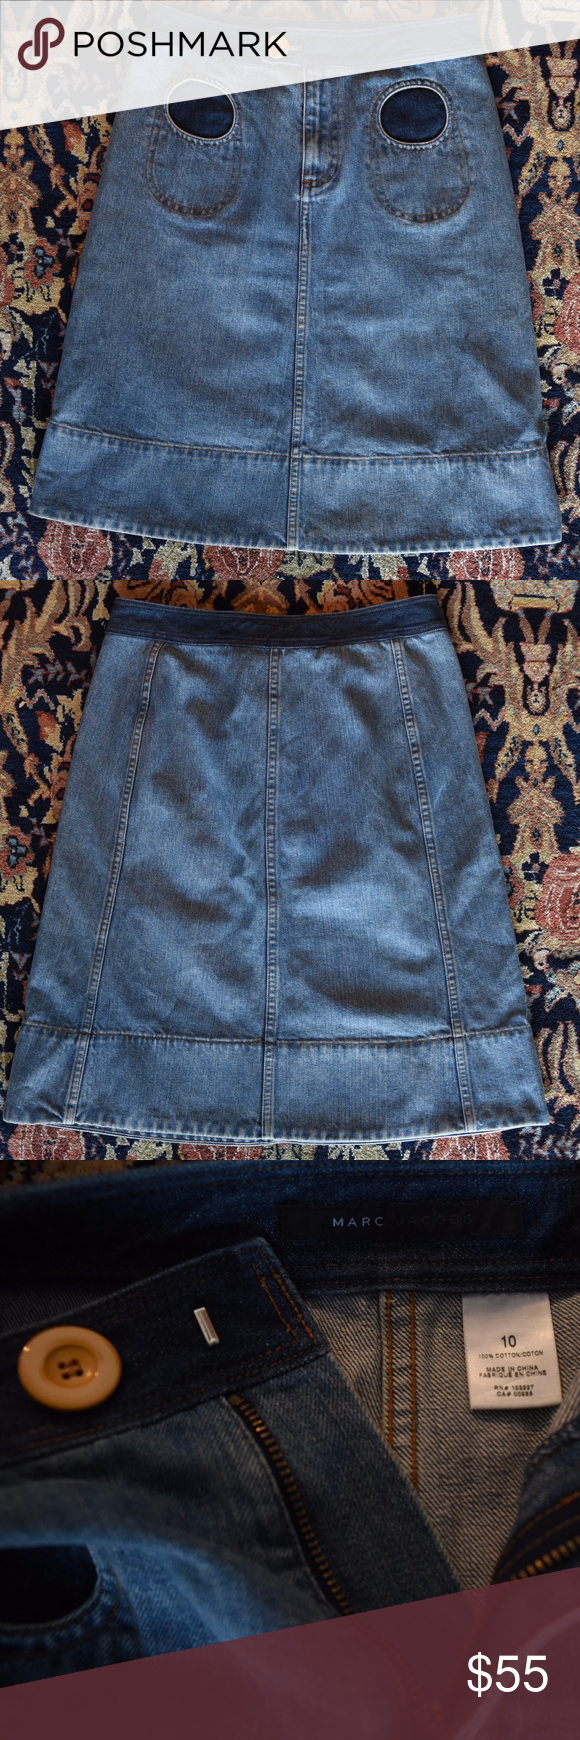 68cde08e1 SALE: MARC JACOBS Jean skirt with Circle Pockets MARC JACOBS 100% Cotton Jean  Skirt with Funky Circle Cutout Pockets [Size 10] Zipper crotch with Orange  ...